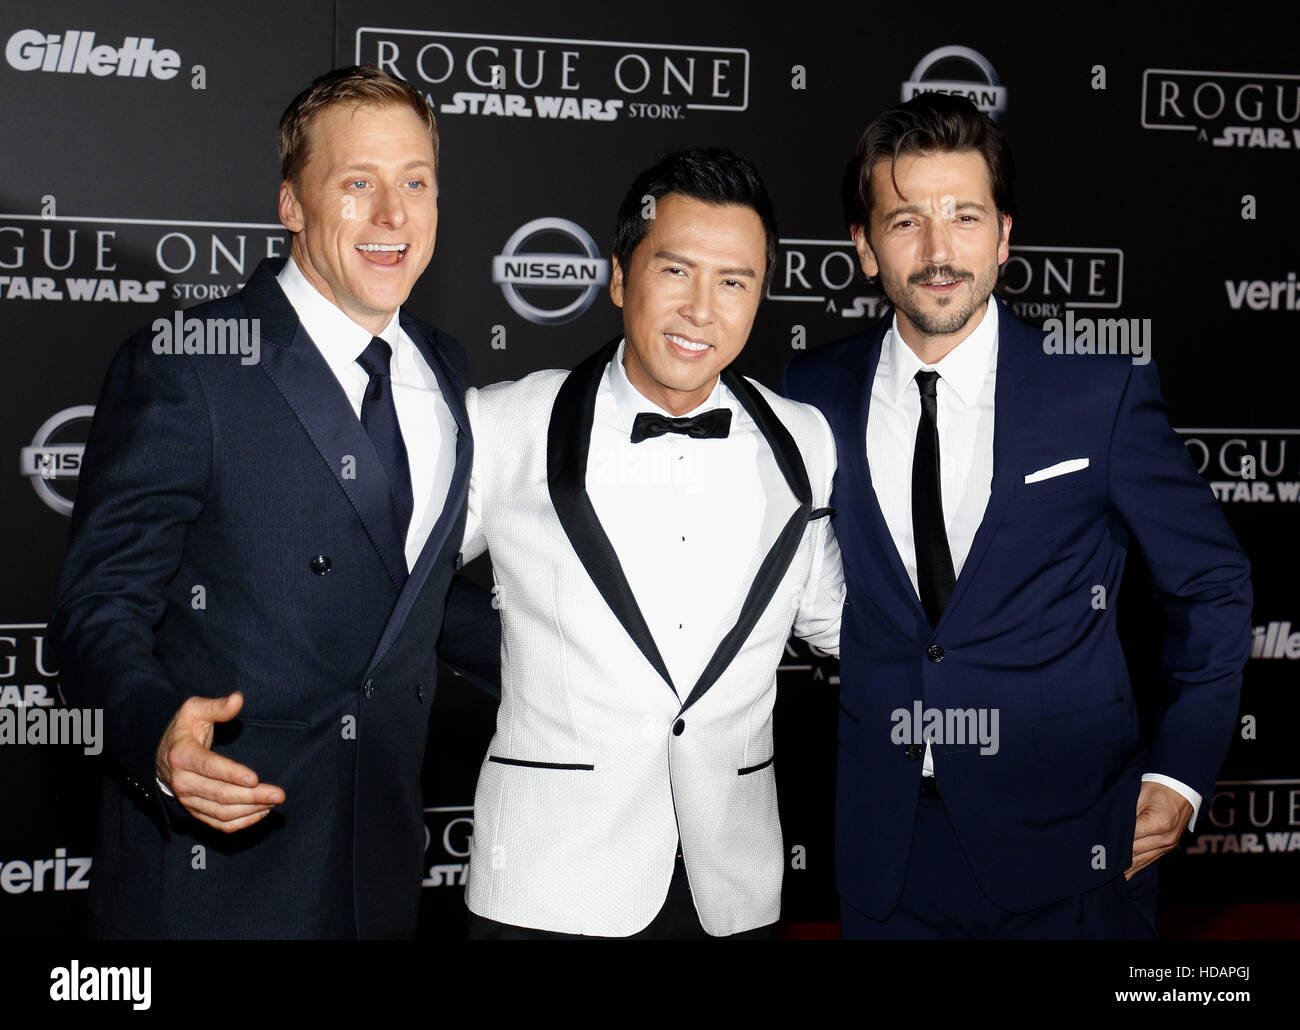 Hollywood, Californie, USA. 11Th Feb 2016. Alan Tudyk, Donnie Yen et Diego Luna lors de la première mondiale Photo Stock